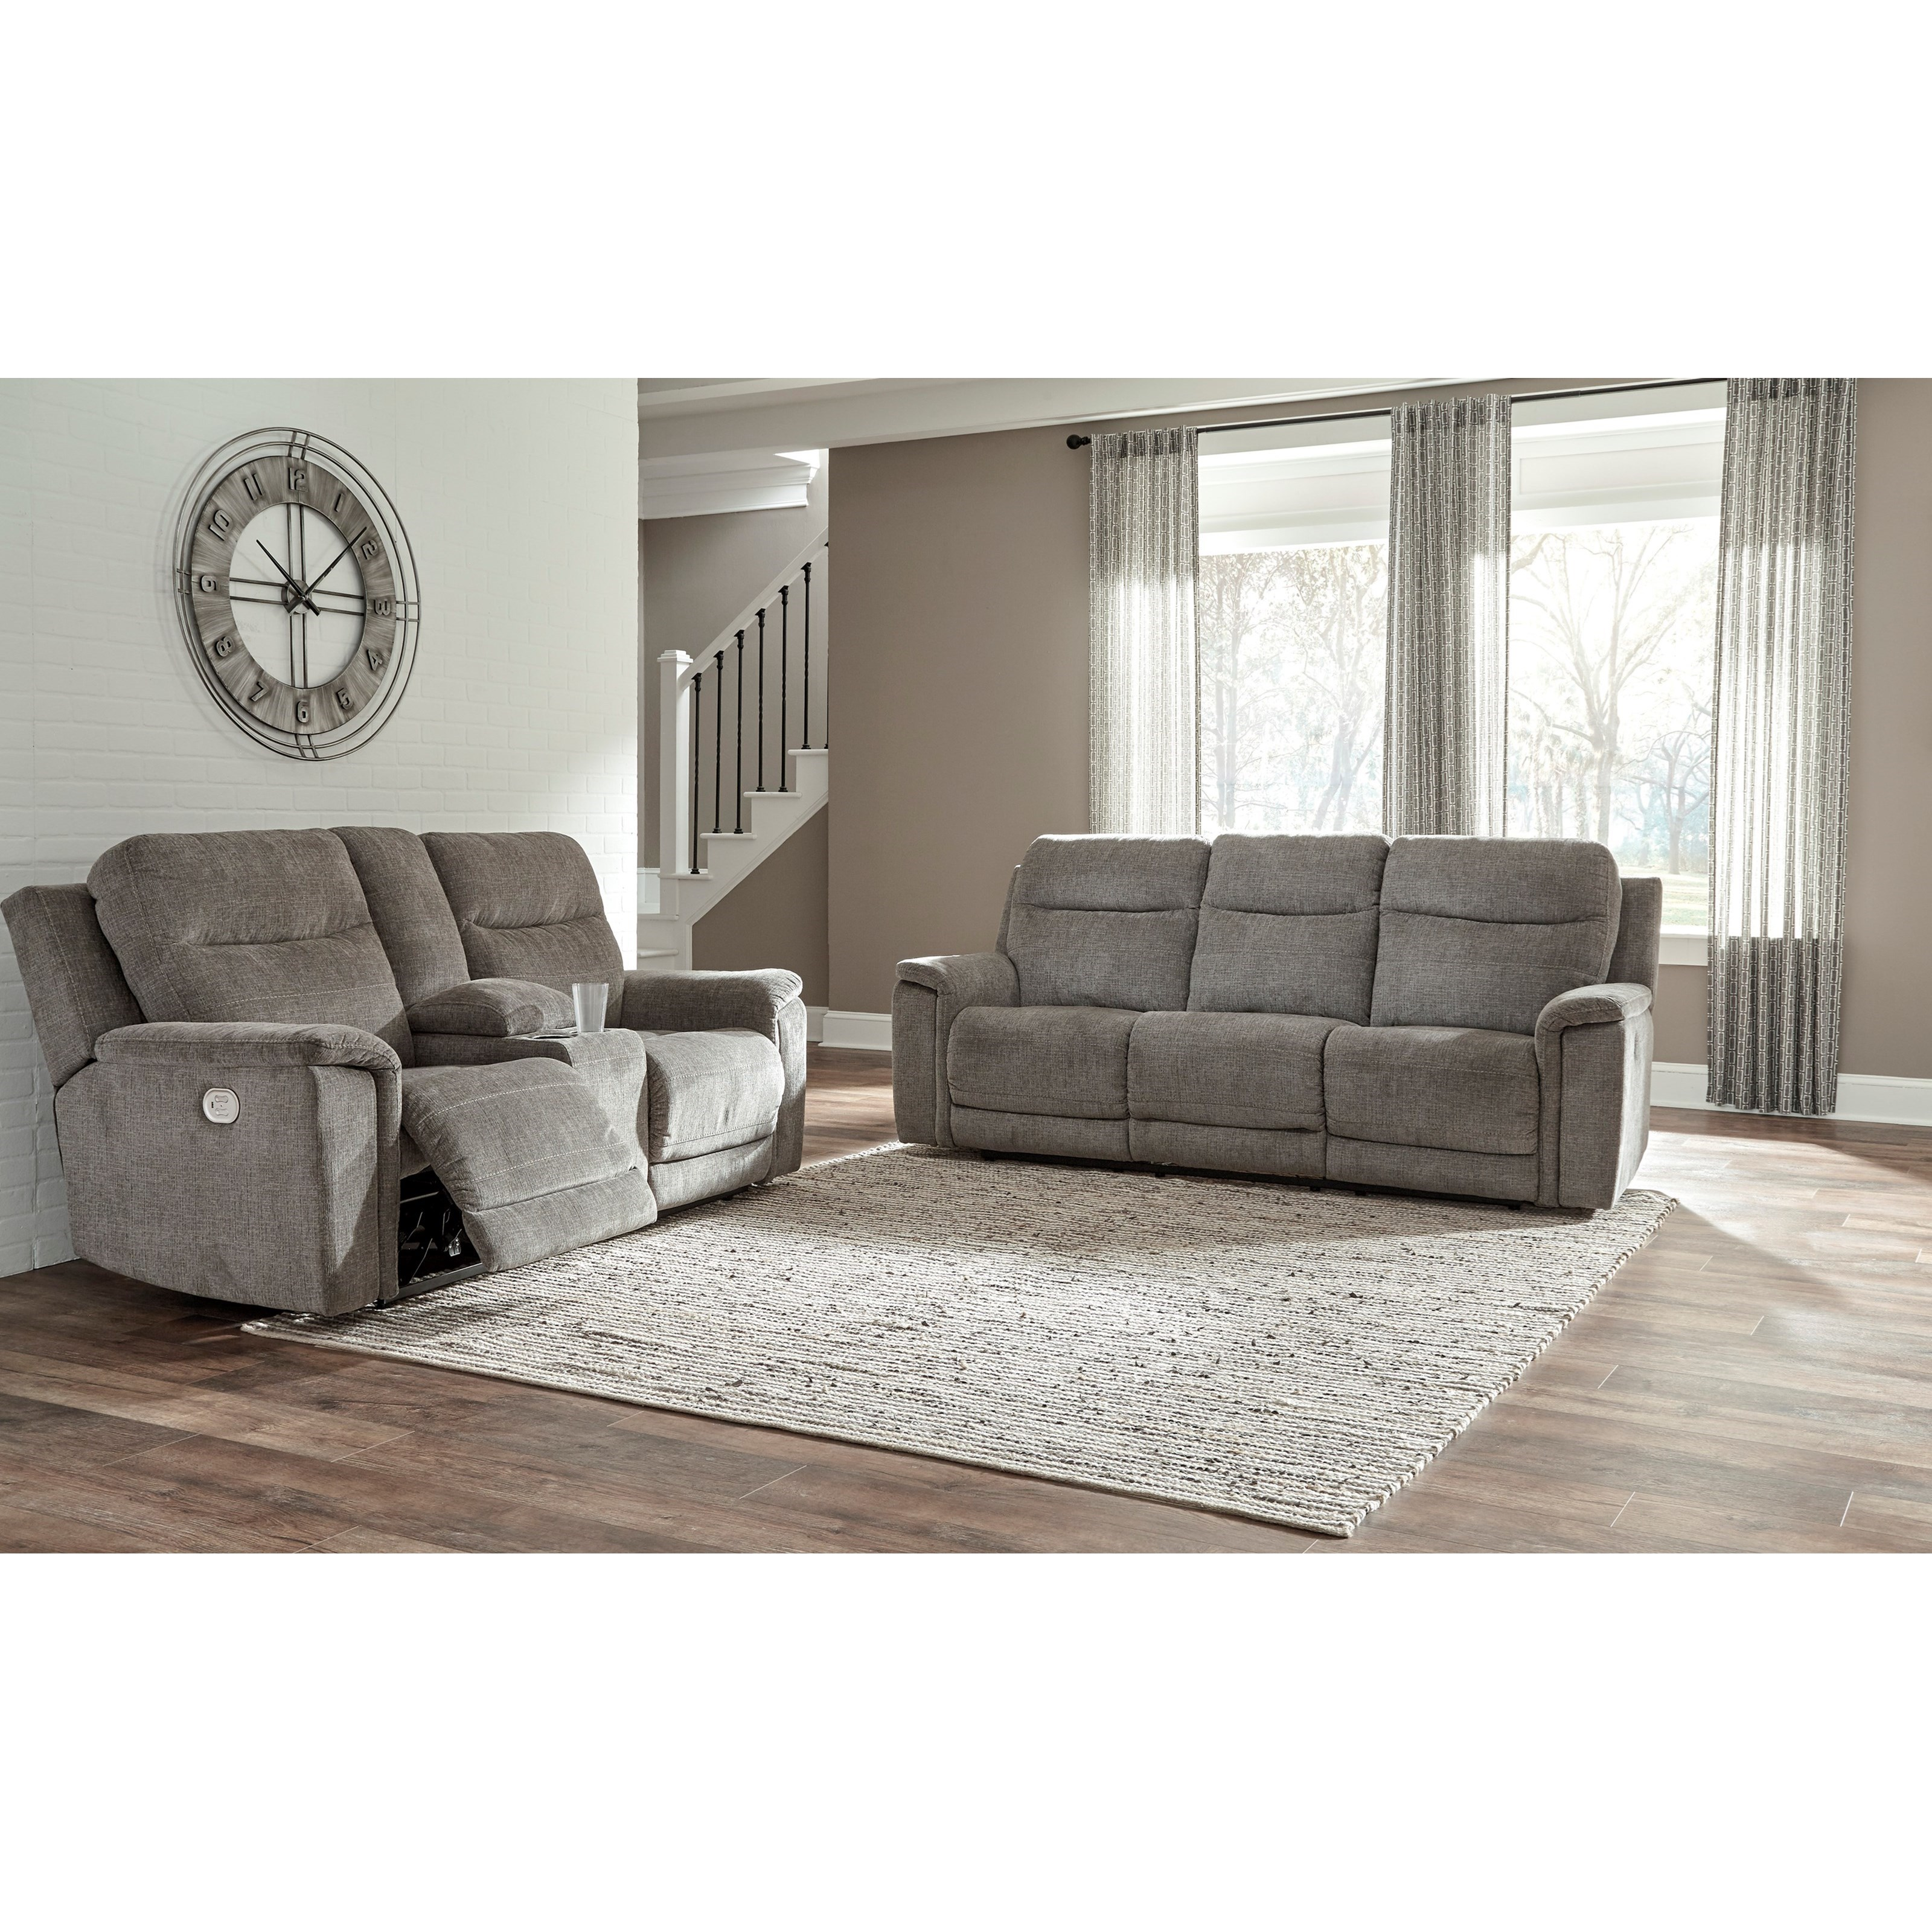 Mouttrie Power Reclining Living Room Group by Signature Design by Ashley at Factory Direct Furniture